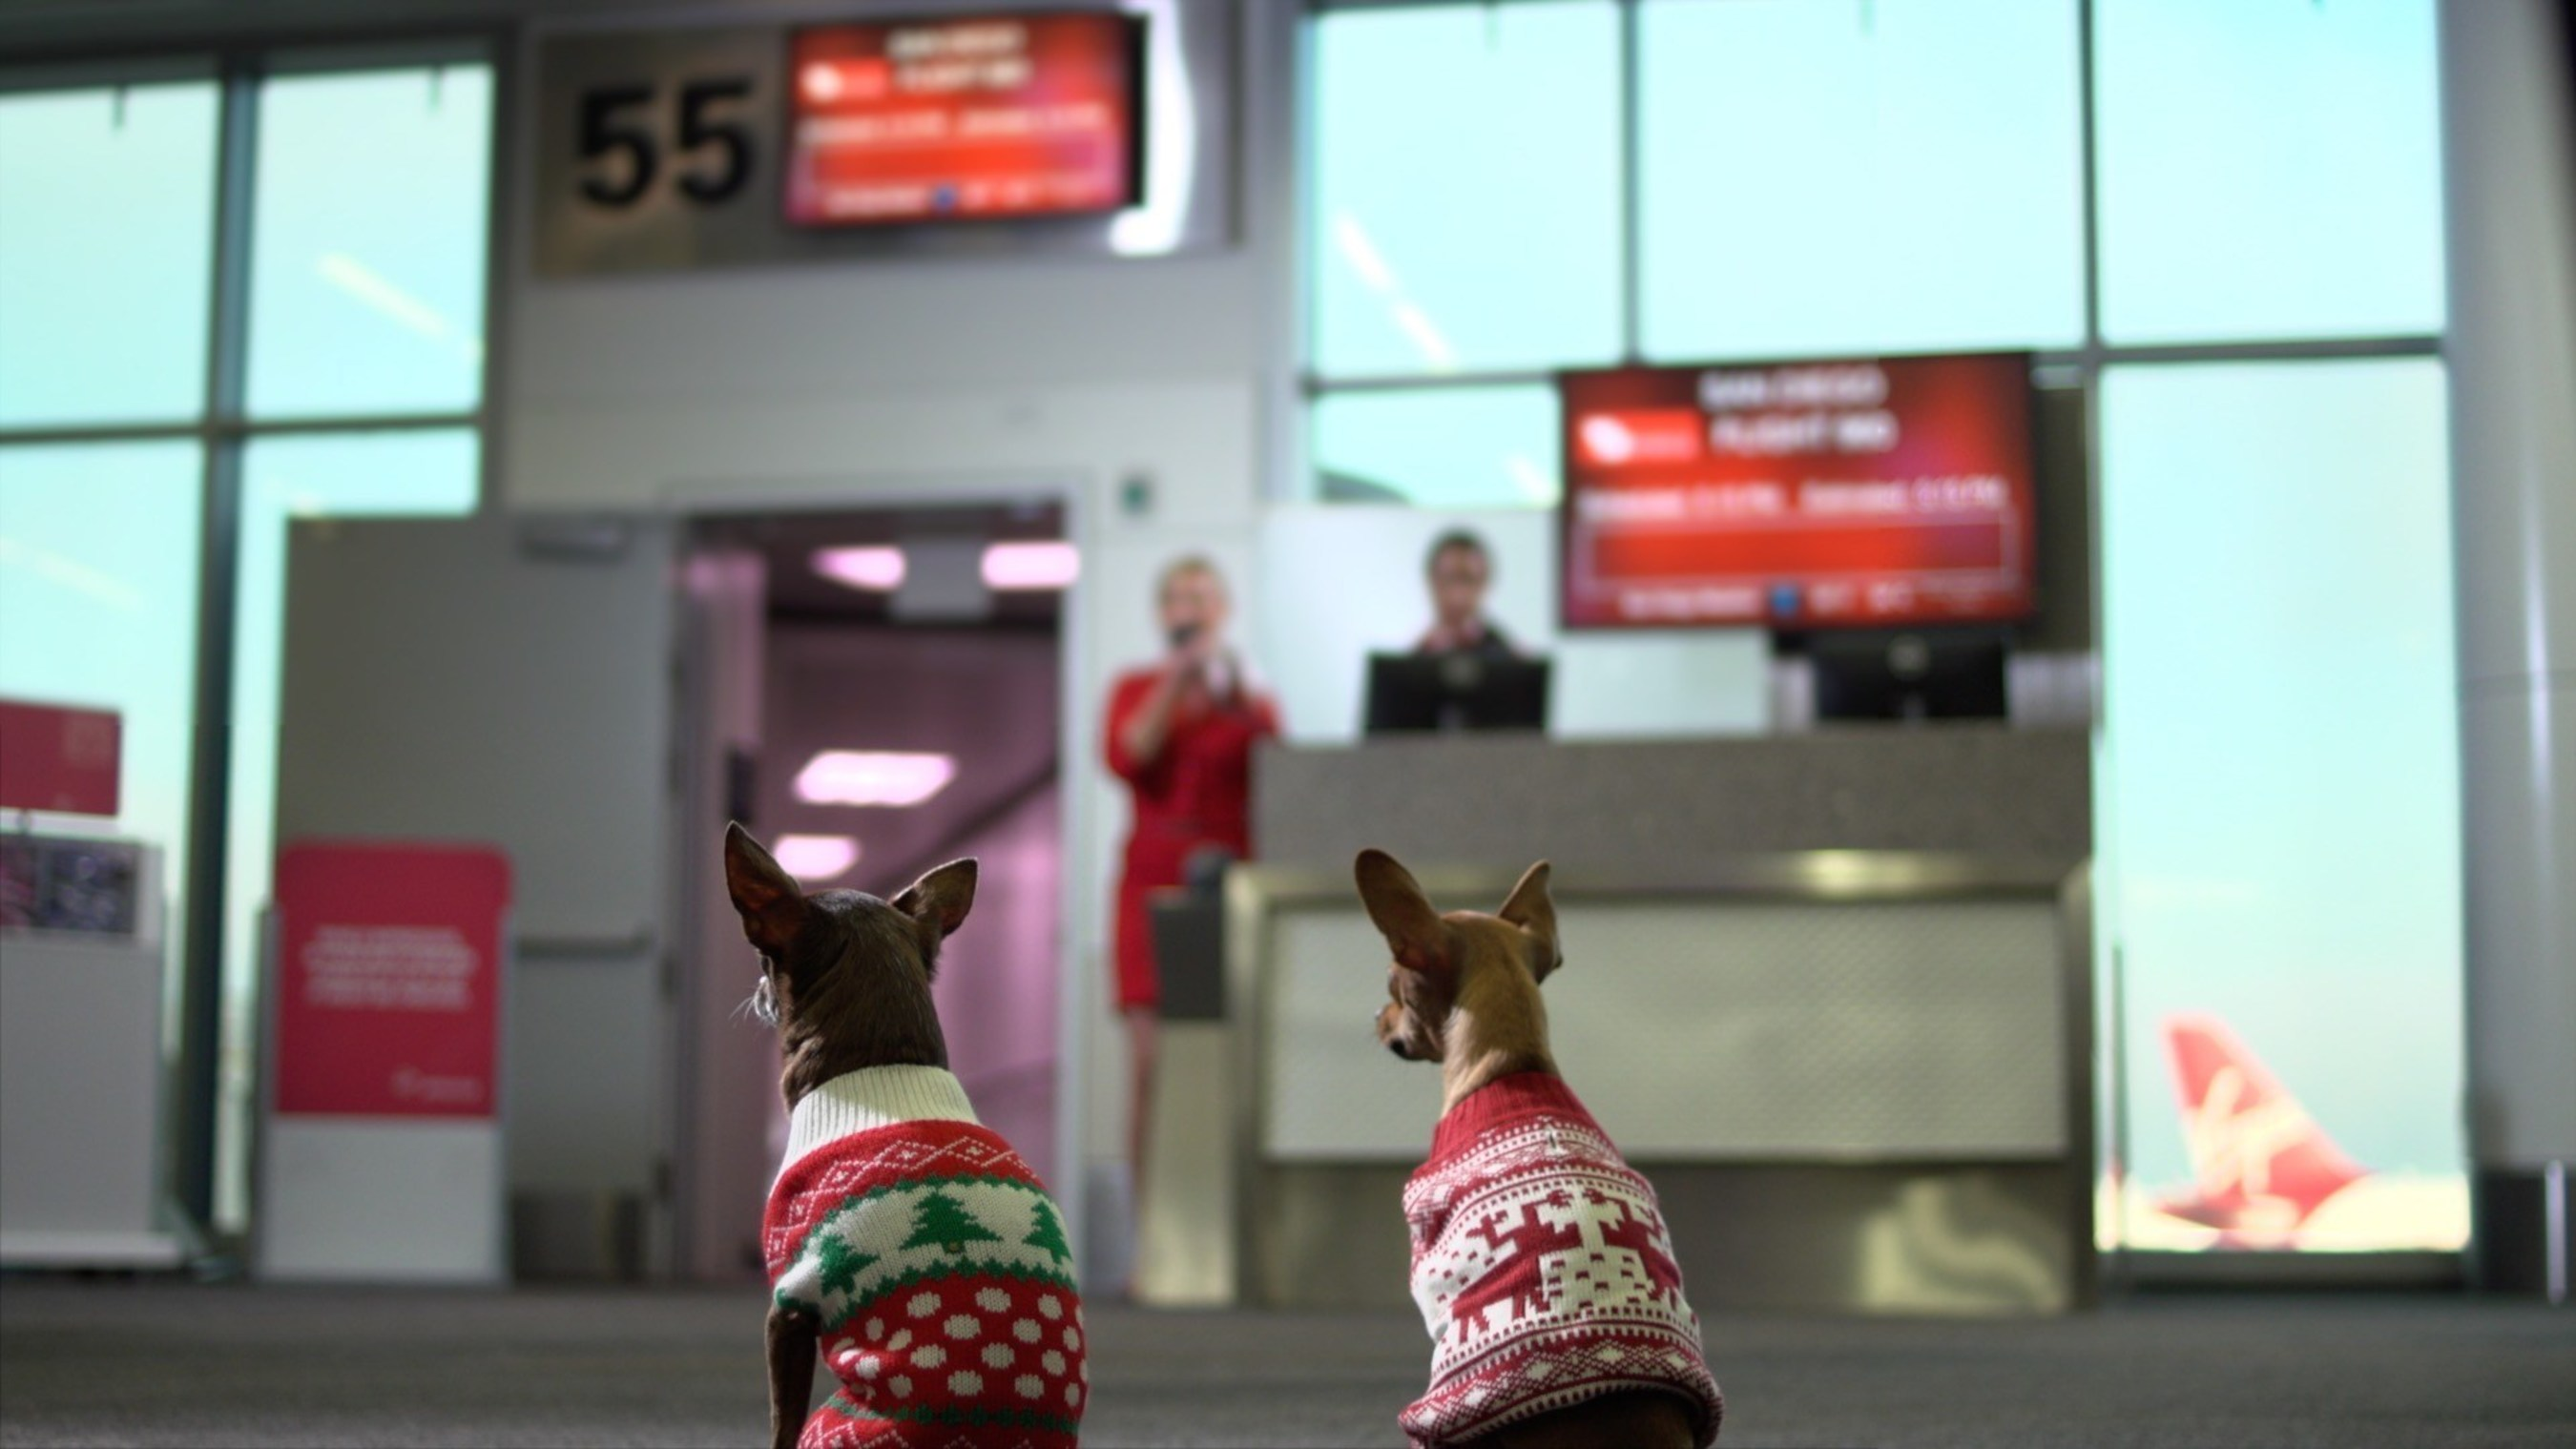 VIRGIN AMERICA UNLEASHES #TINYDOGSTINYFARES CYBER MONDAY DEAL AND OPERATION CHIHUAHUA AIRLIFT